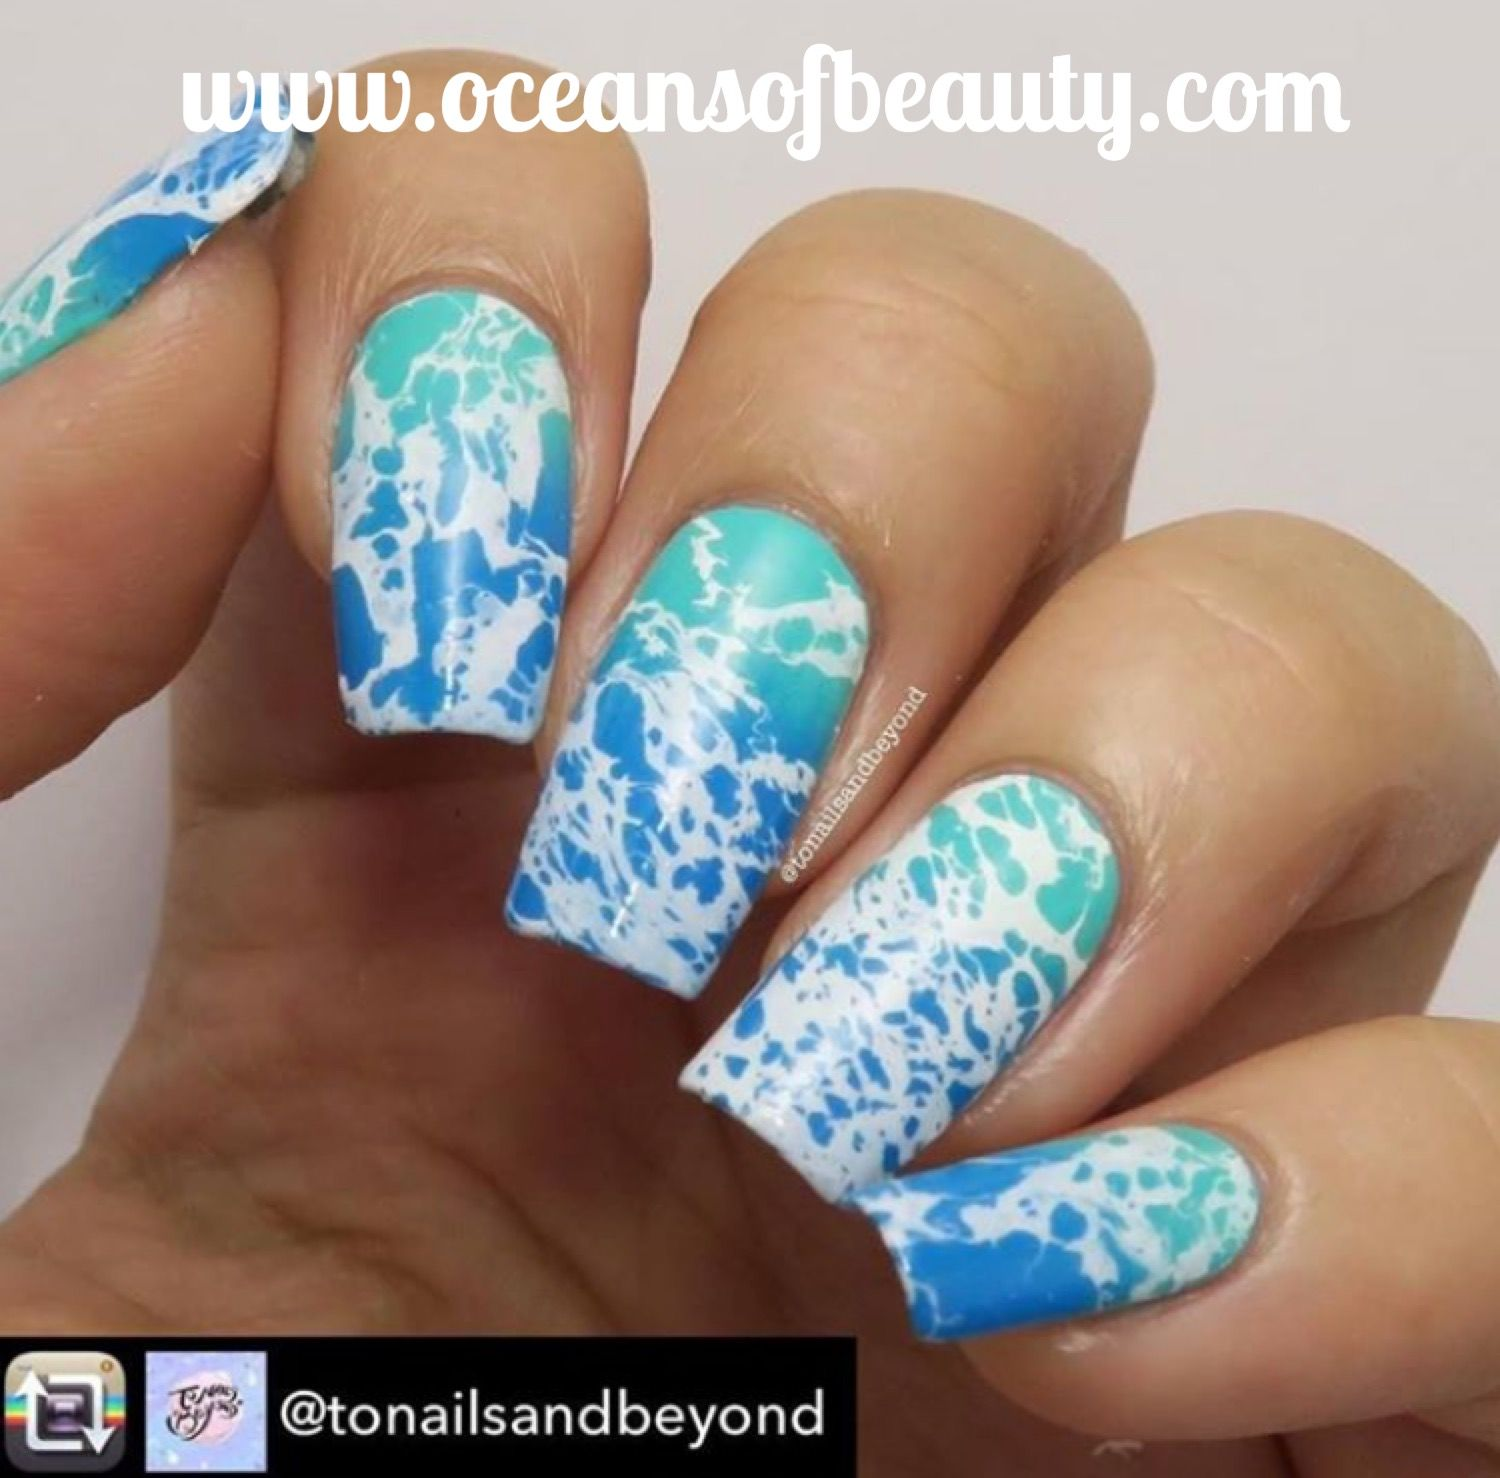 Mylar Flakes by Sparkle & Co. Visit OceansofBeauty.com